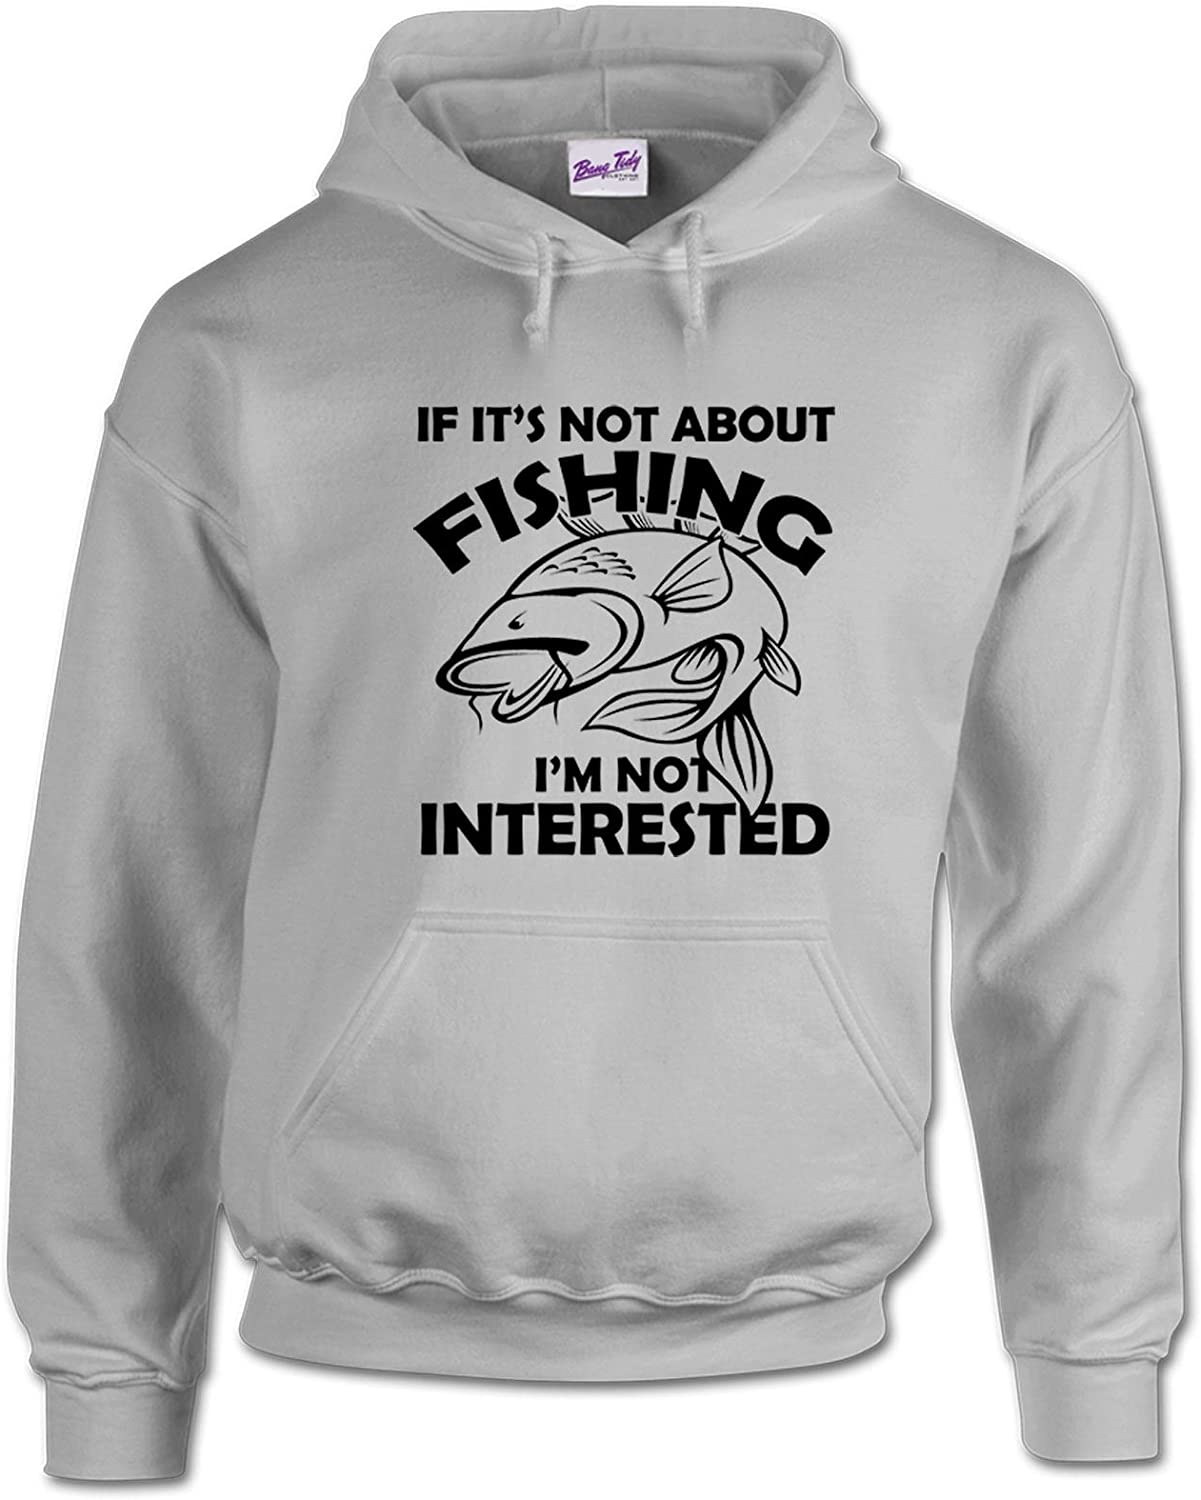 Fishing Hoodies Fishermen Gifts for Men Anglers Carp Clothing Its not-SPGR-XXL Grey